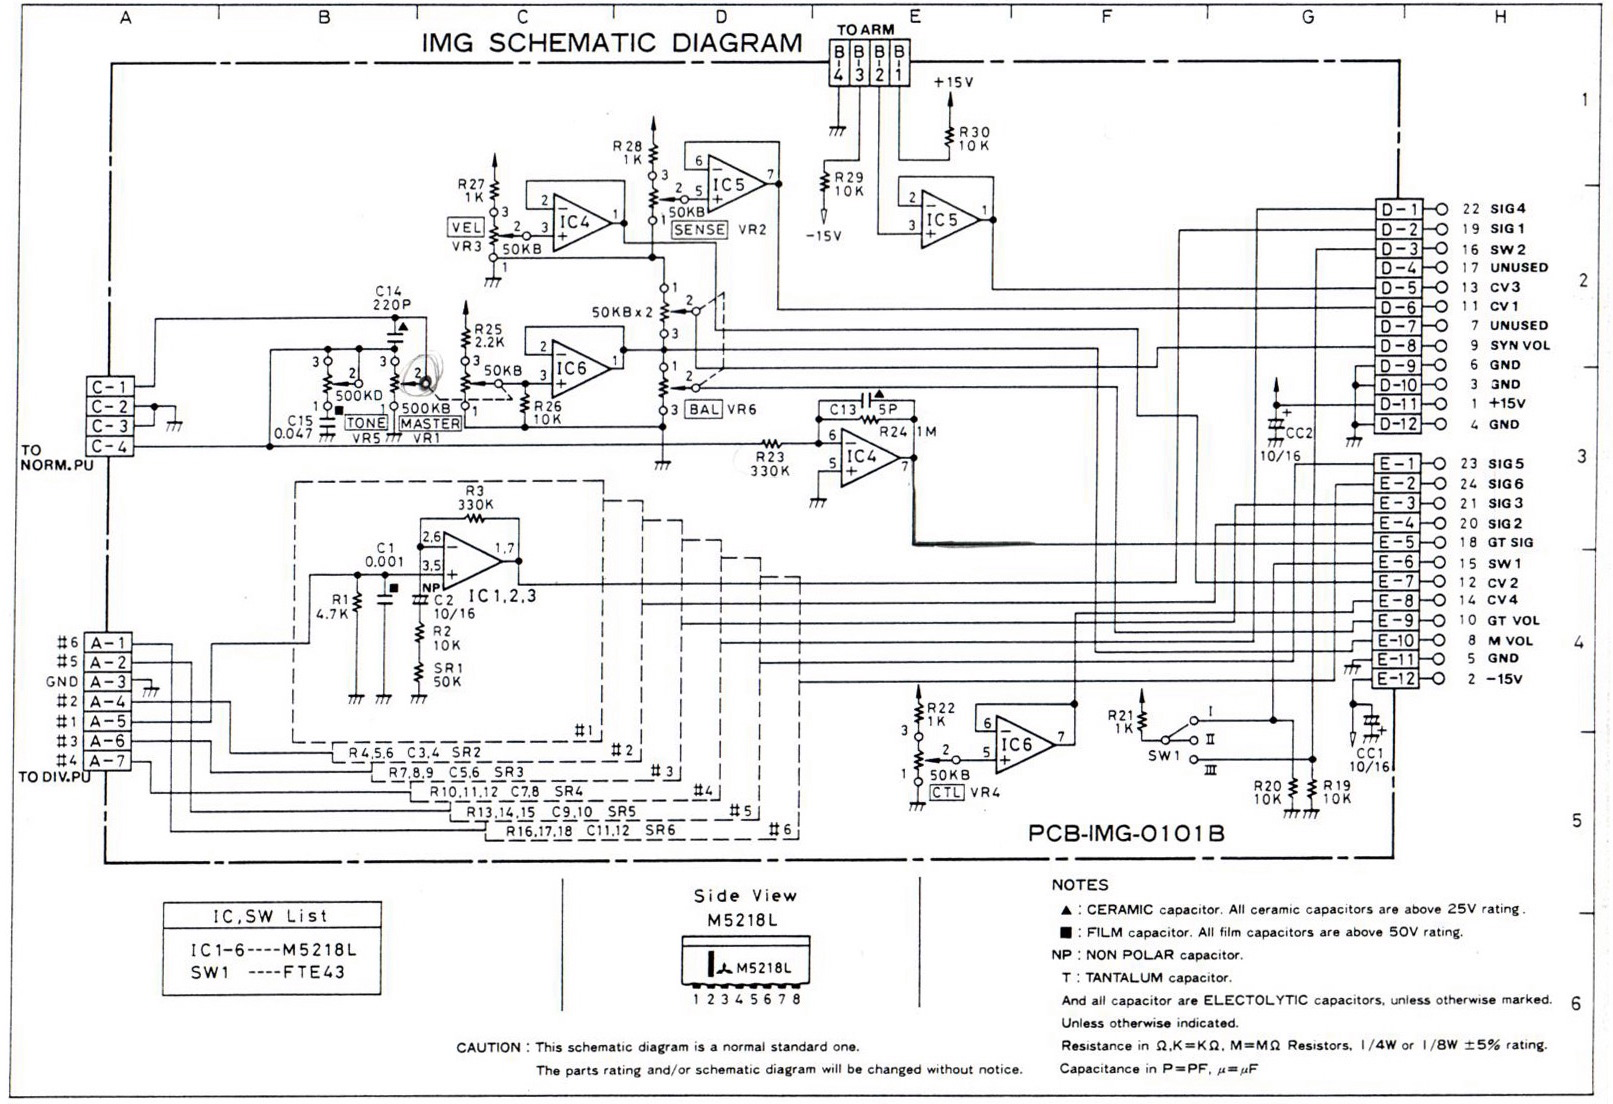 Wiring Diagram For Stev Auto Electrical Steve Morse 26 Images